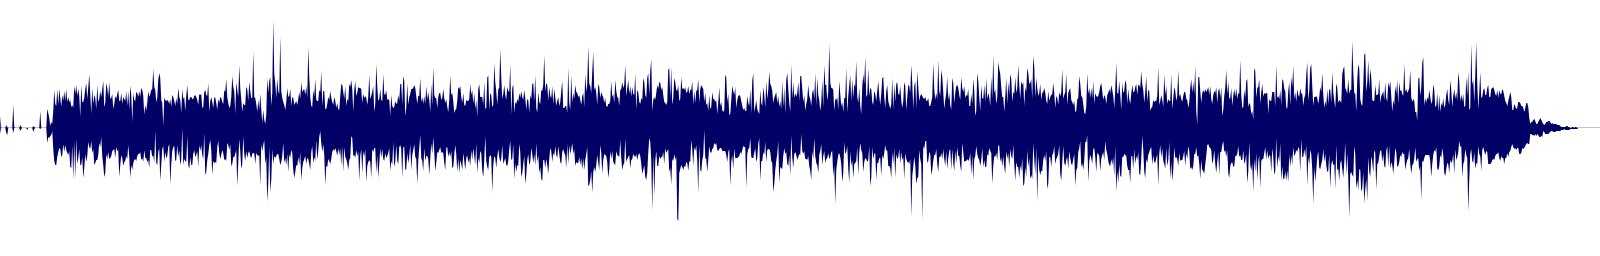 waveform of track #107212